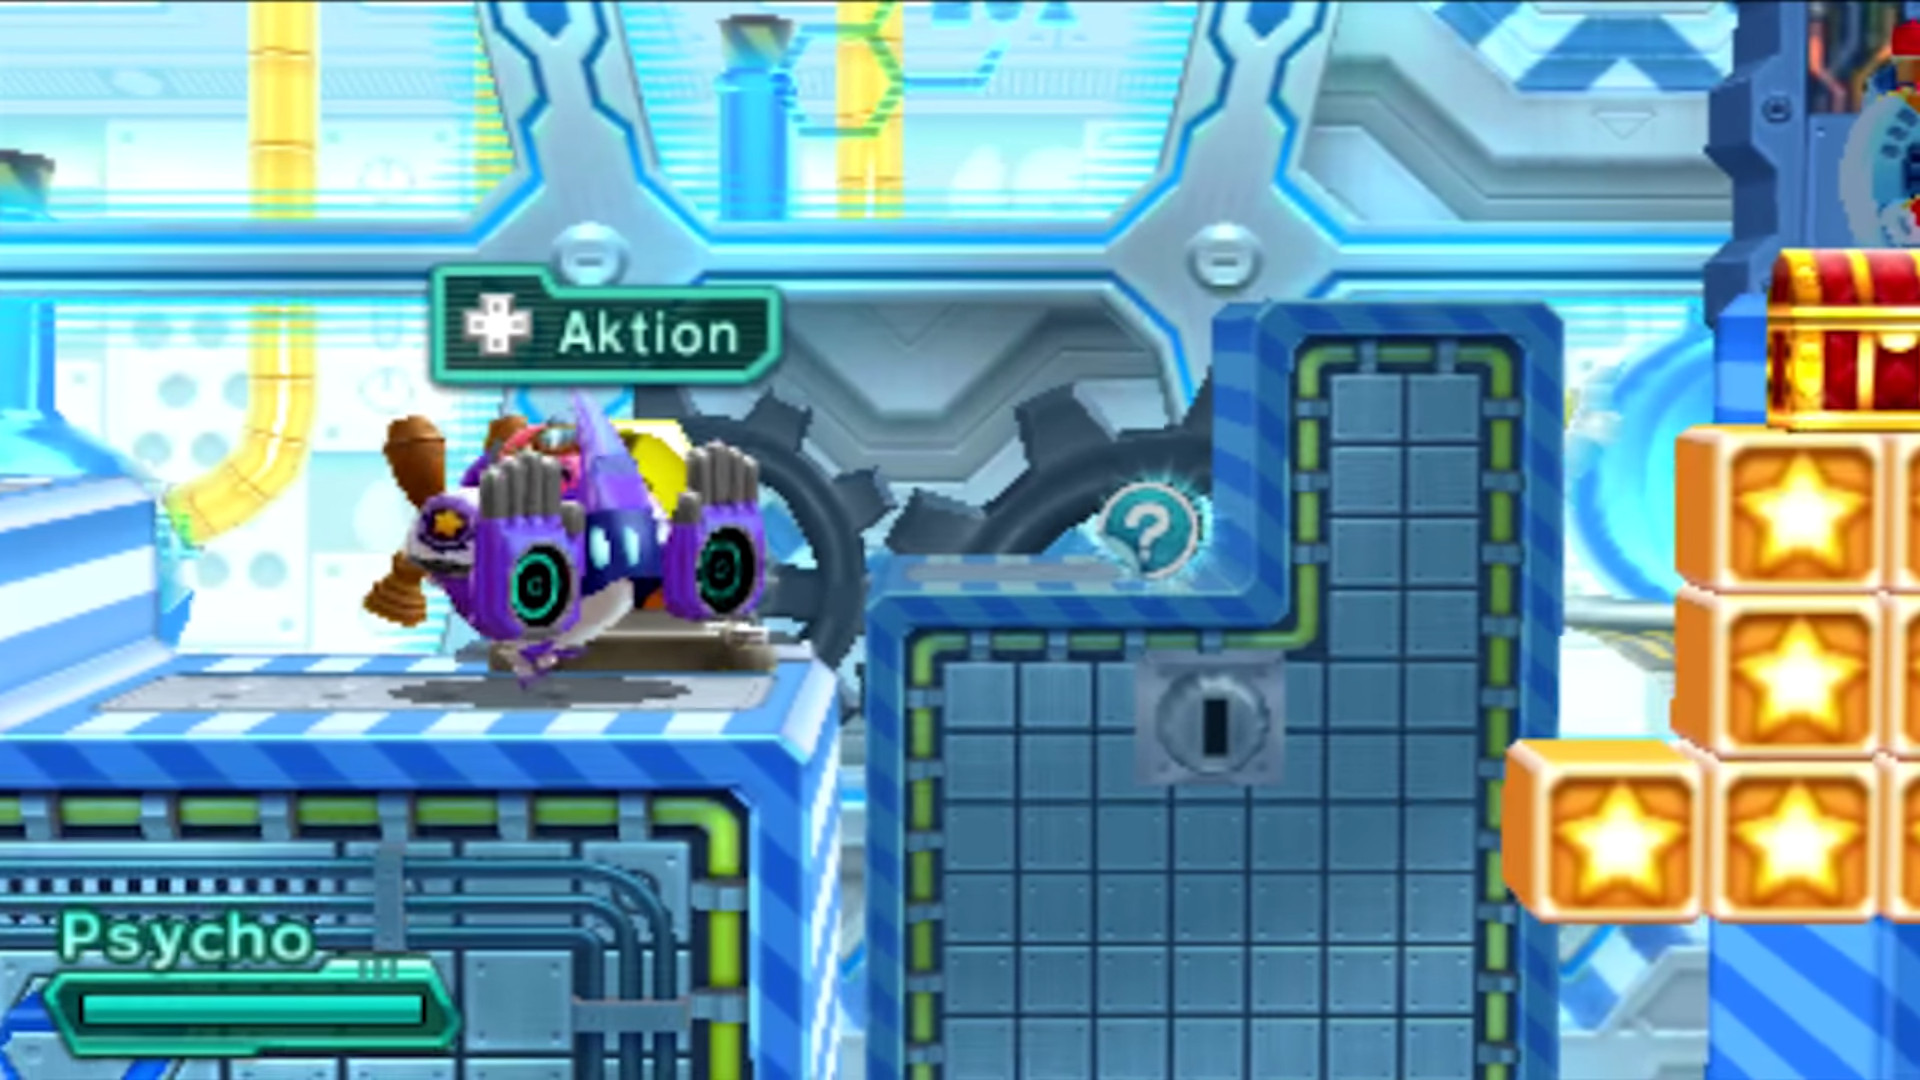 nat games kirby planet robobot 3